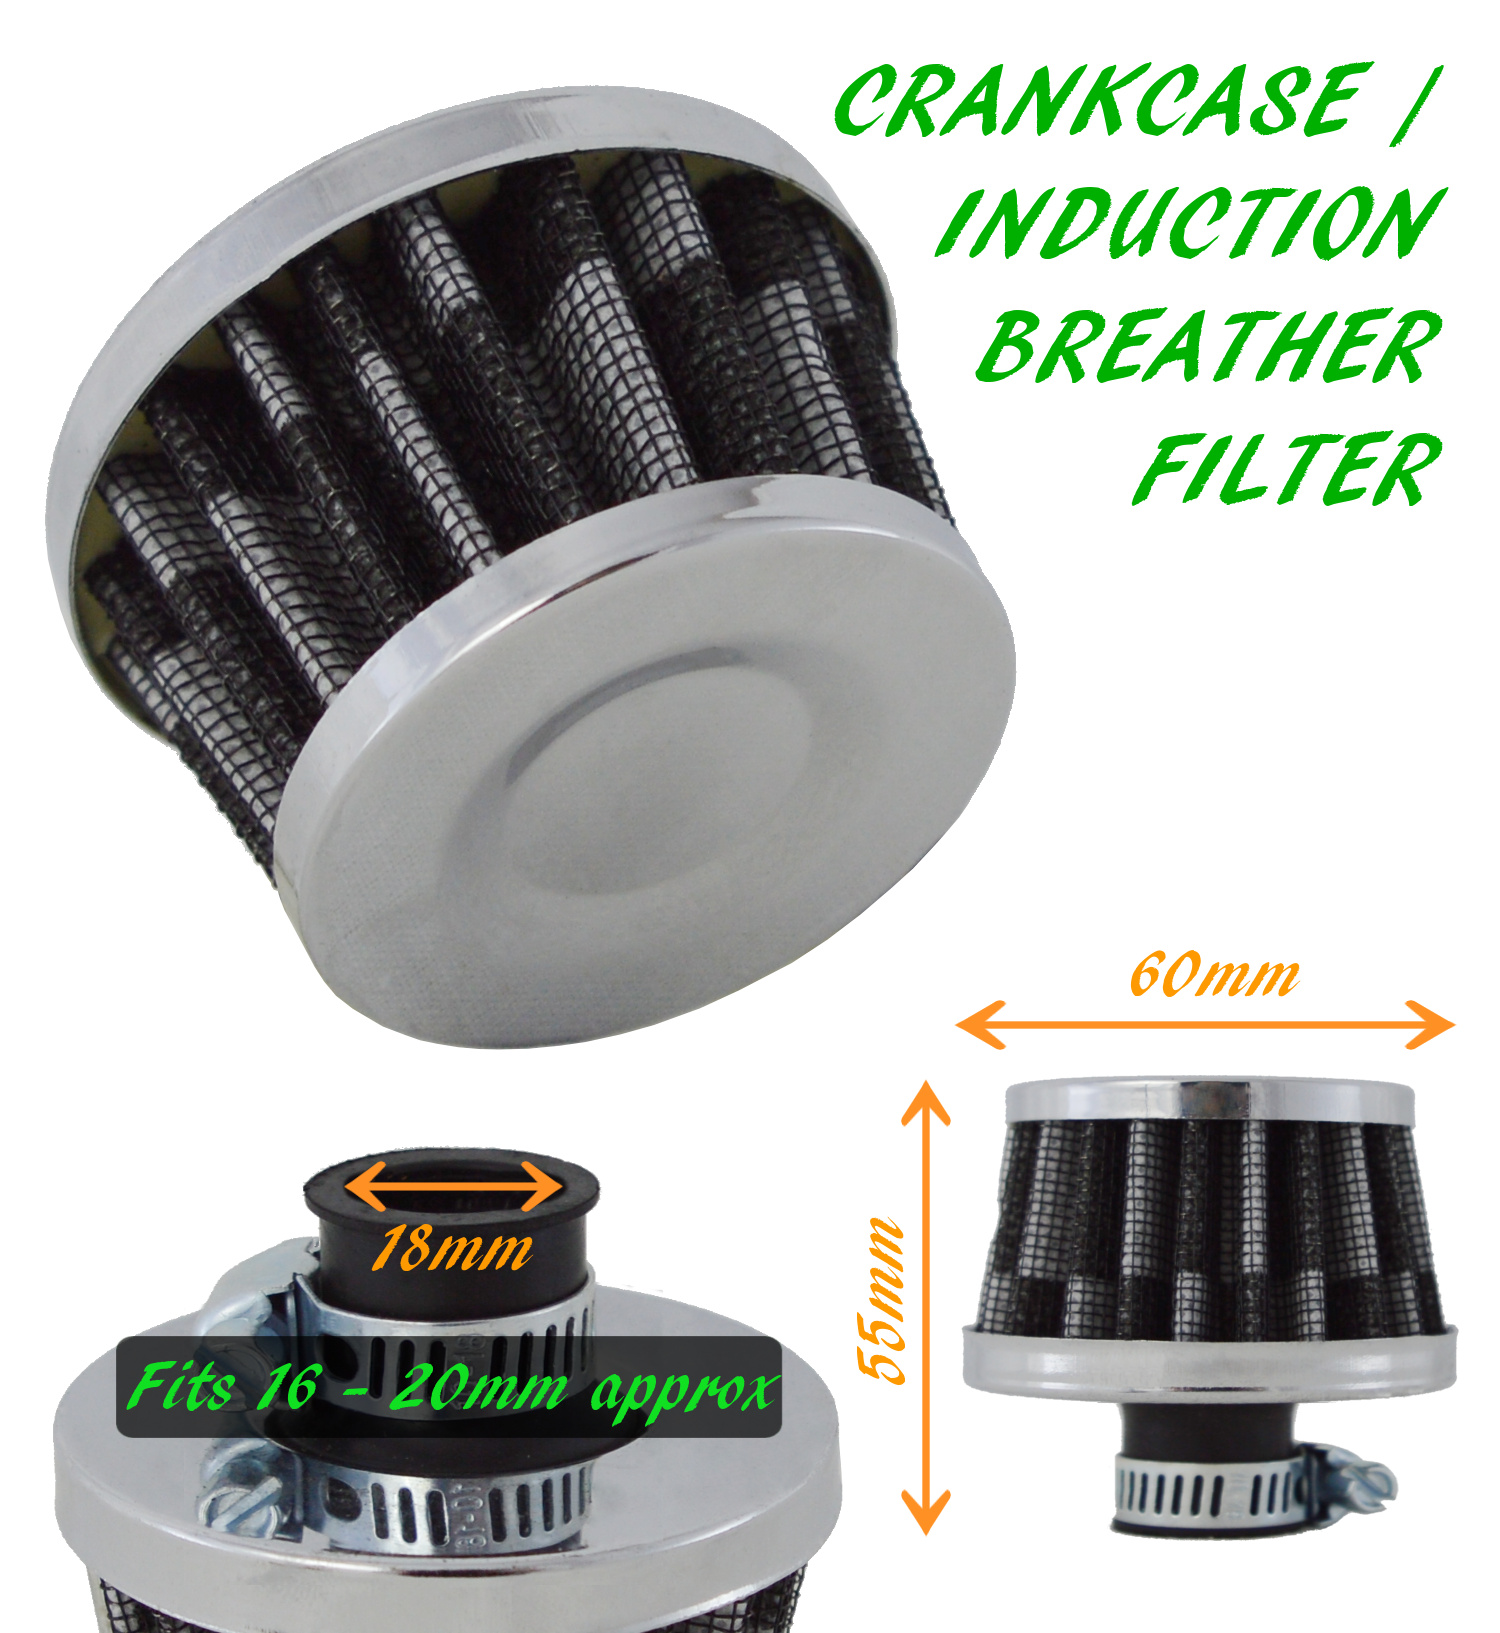 OIL MINI BREATHER AIR FILTER FUEL CRANKCASE ENGINE CAR Ford 2 CARBON